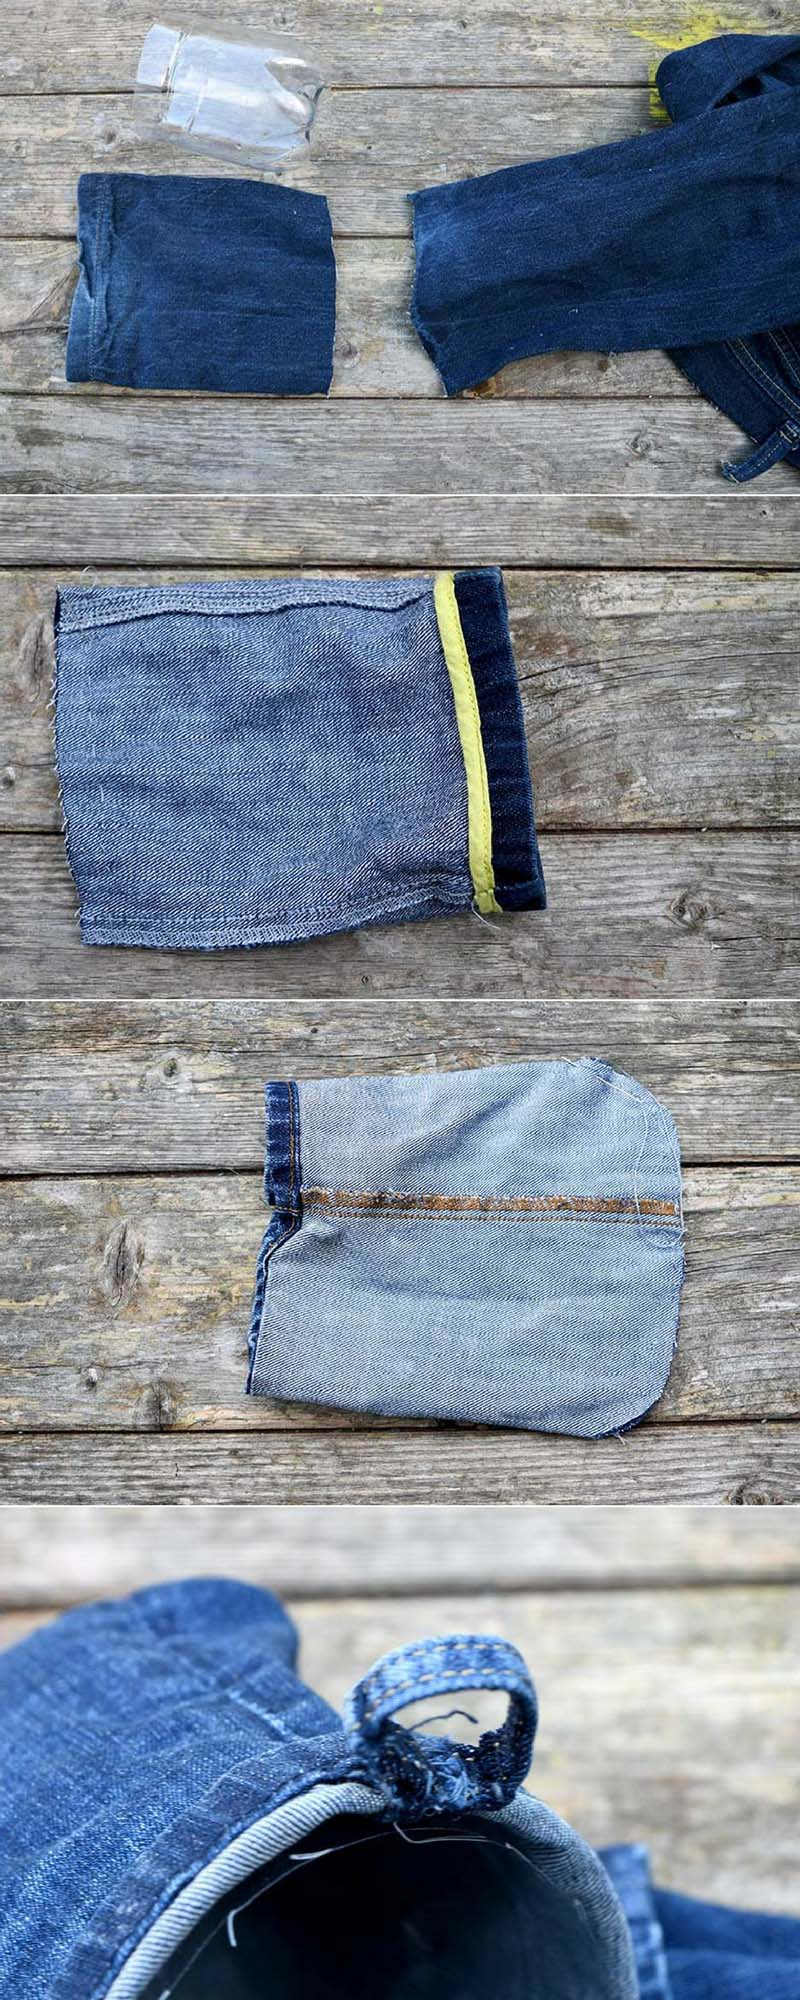 Making denim pouches for indoor heb garden